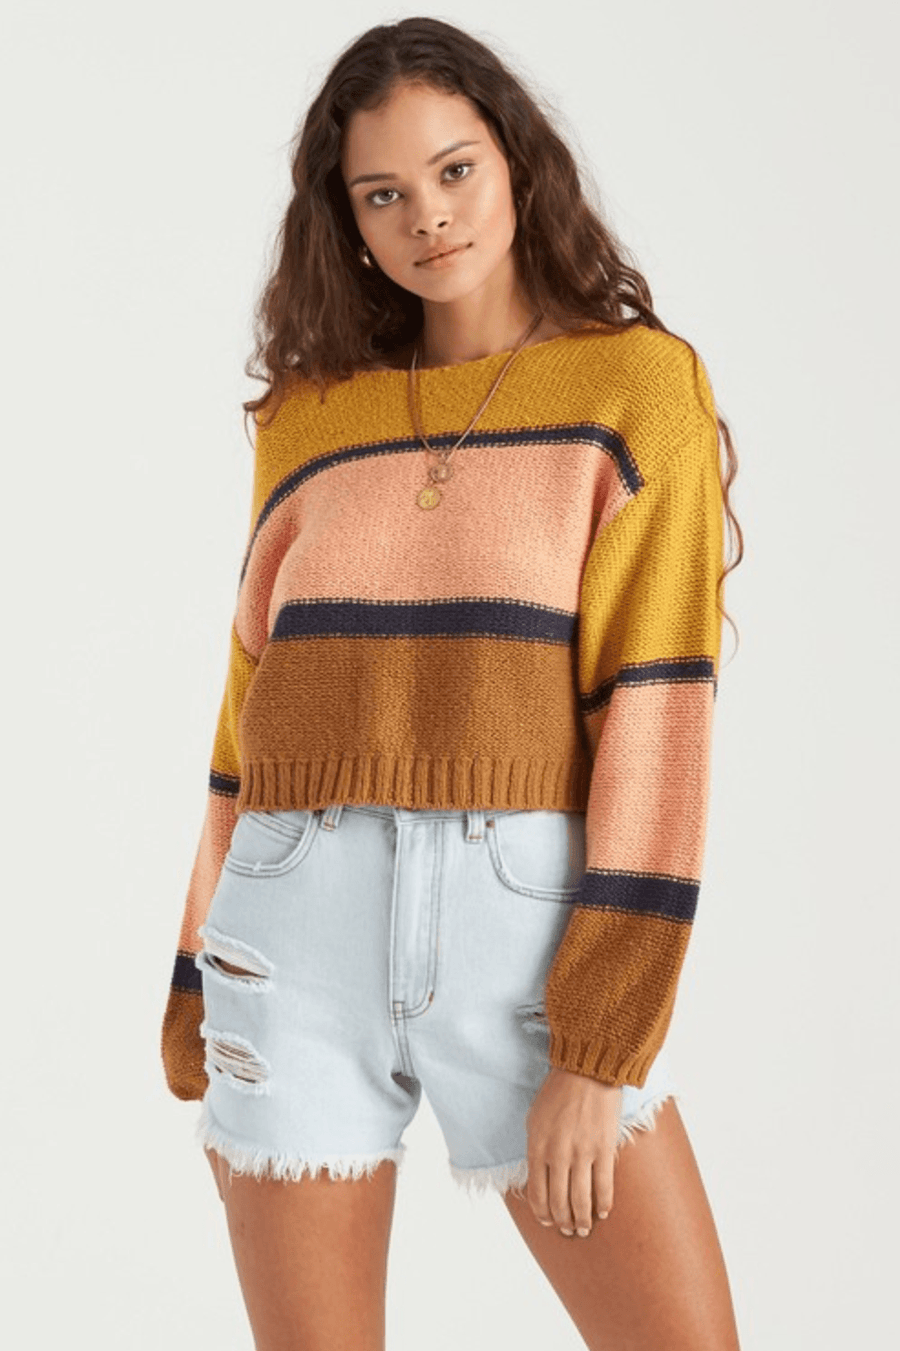 BILLABONG Seeing Stripes Sweater Women's Antique Gold WOMENS APPAREL - Women's Knits and Sweaters Billabong